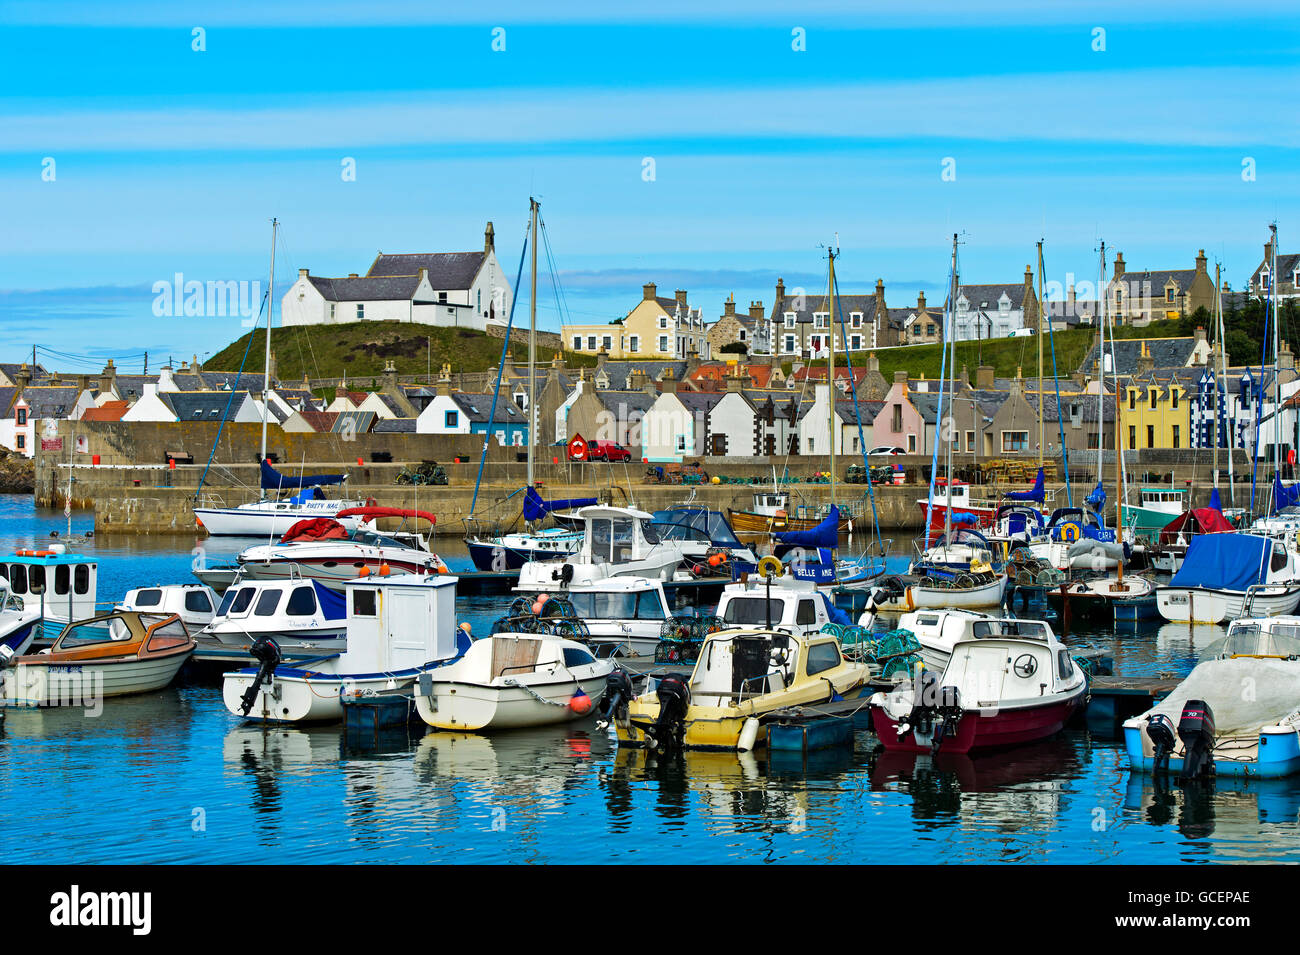 Fishing village, Findochty Harbour, Moray Firth, Scotland, United Kingdom Stock Photo